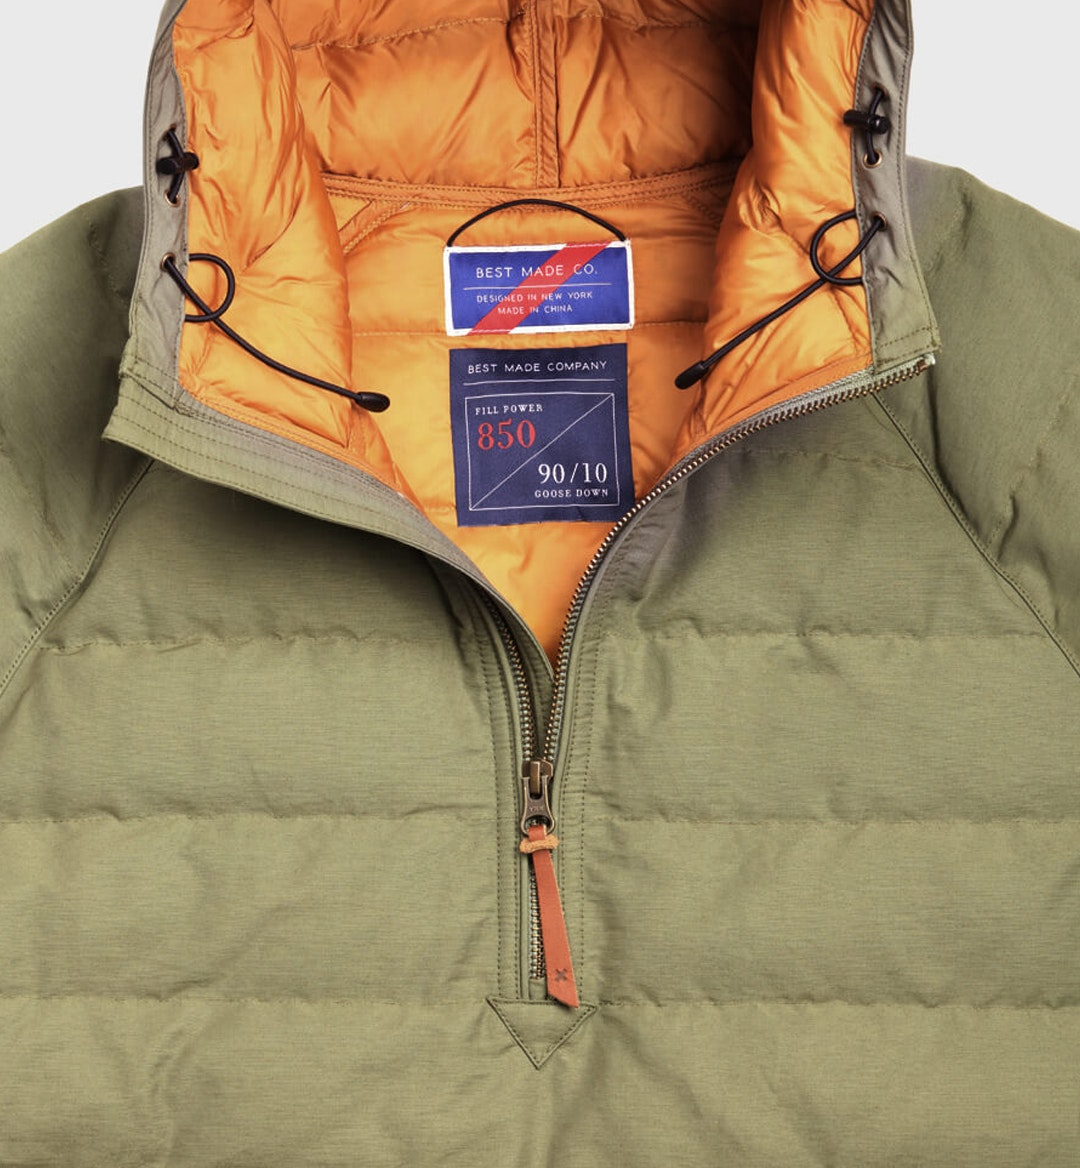 Best Made Co puffer jacket mobile